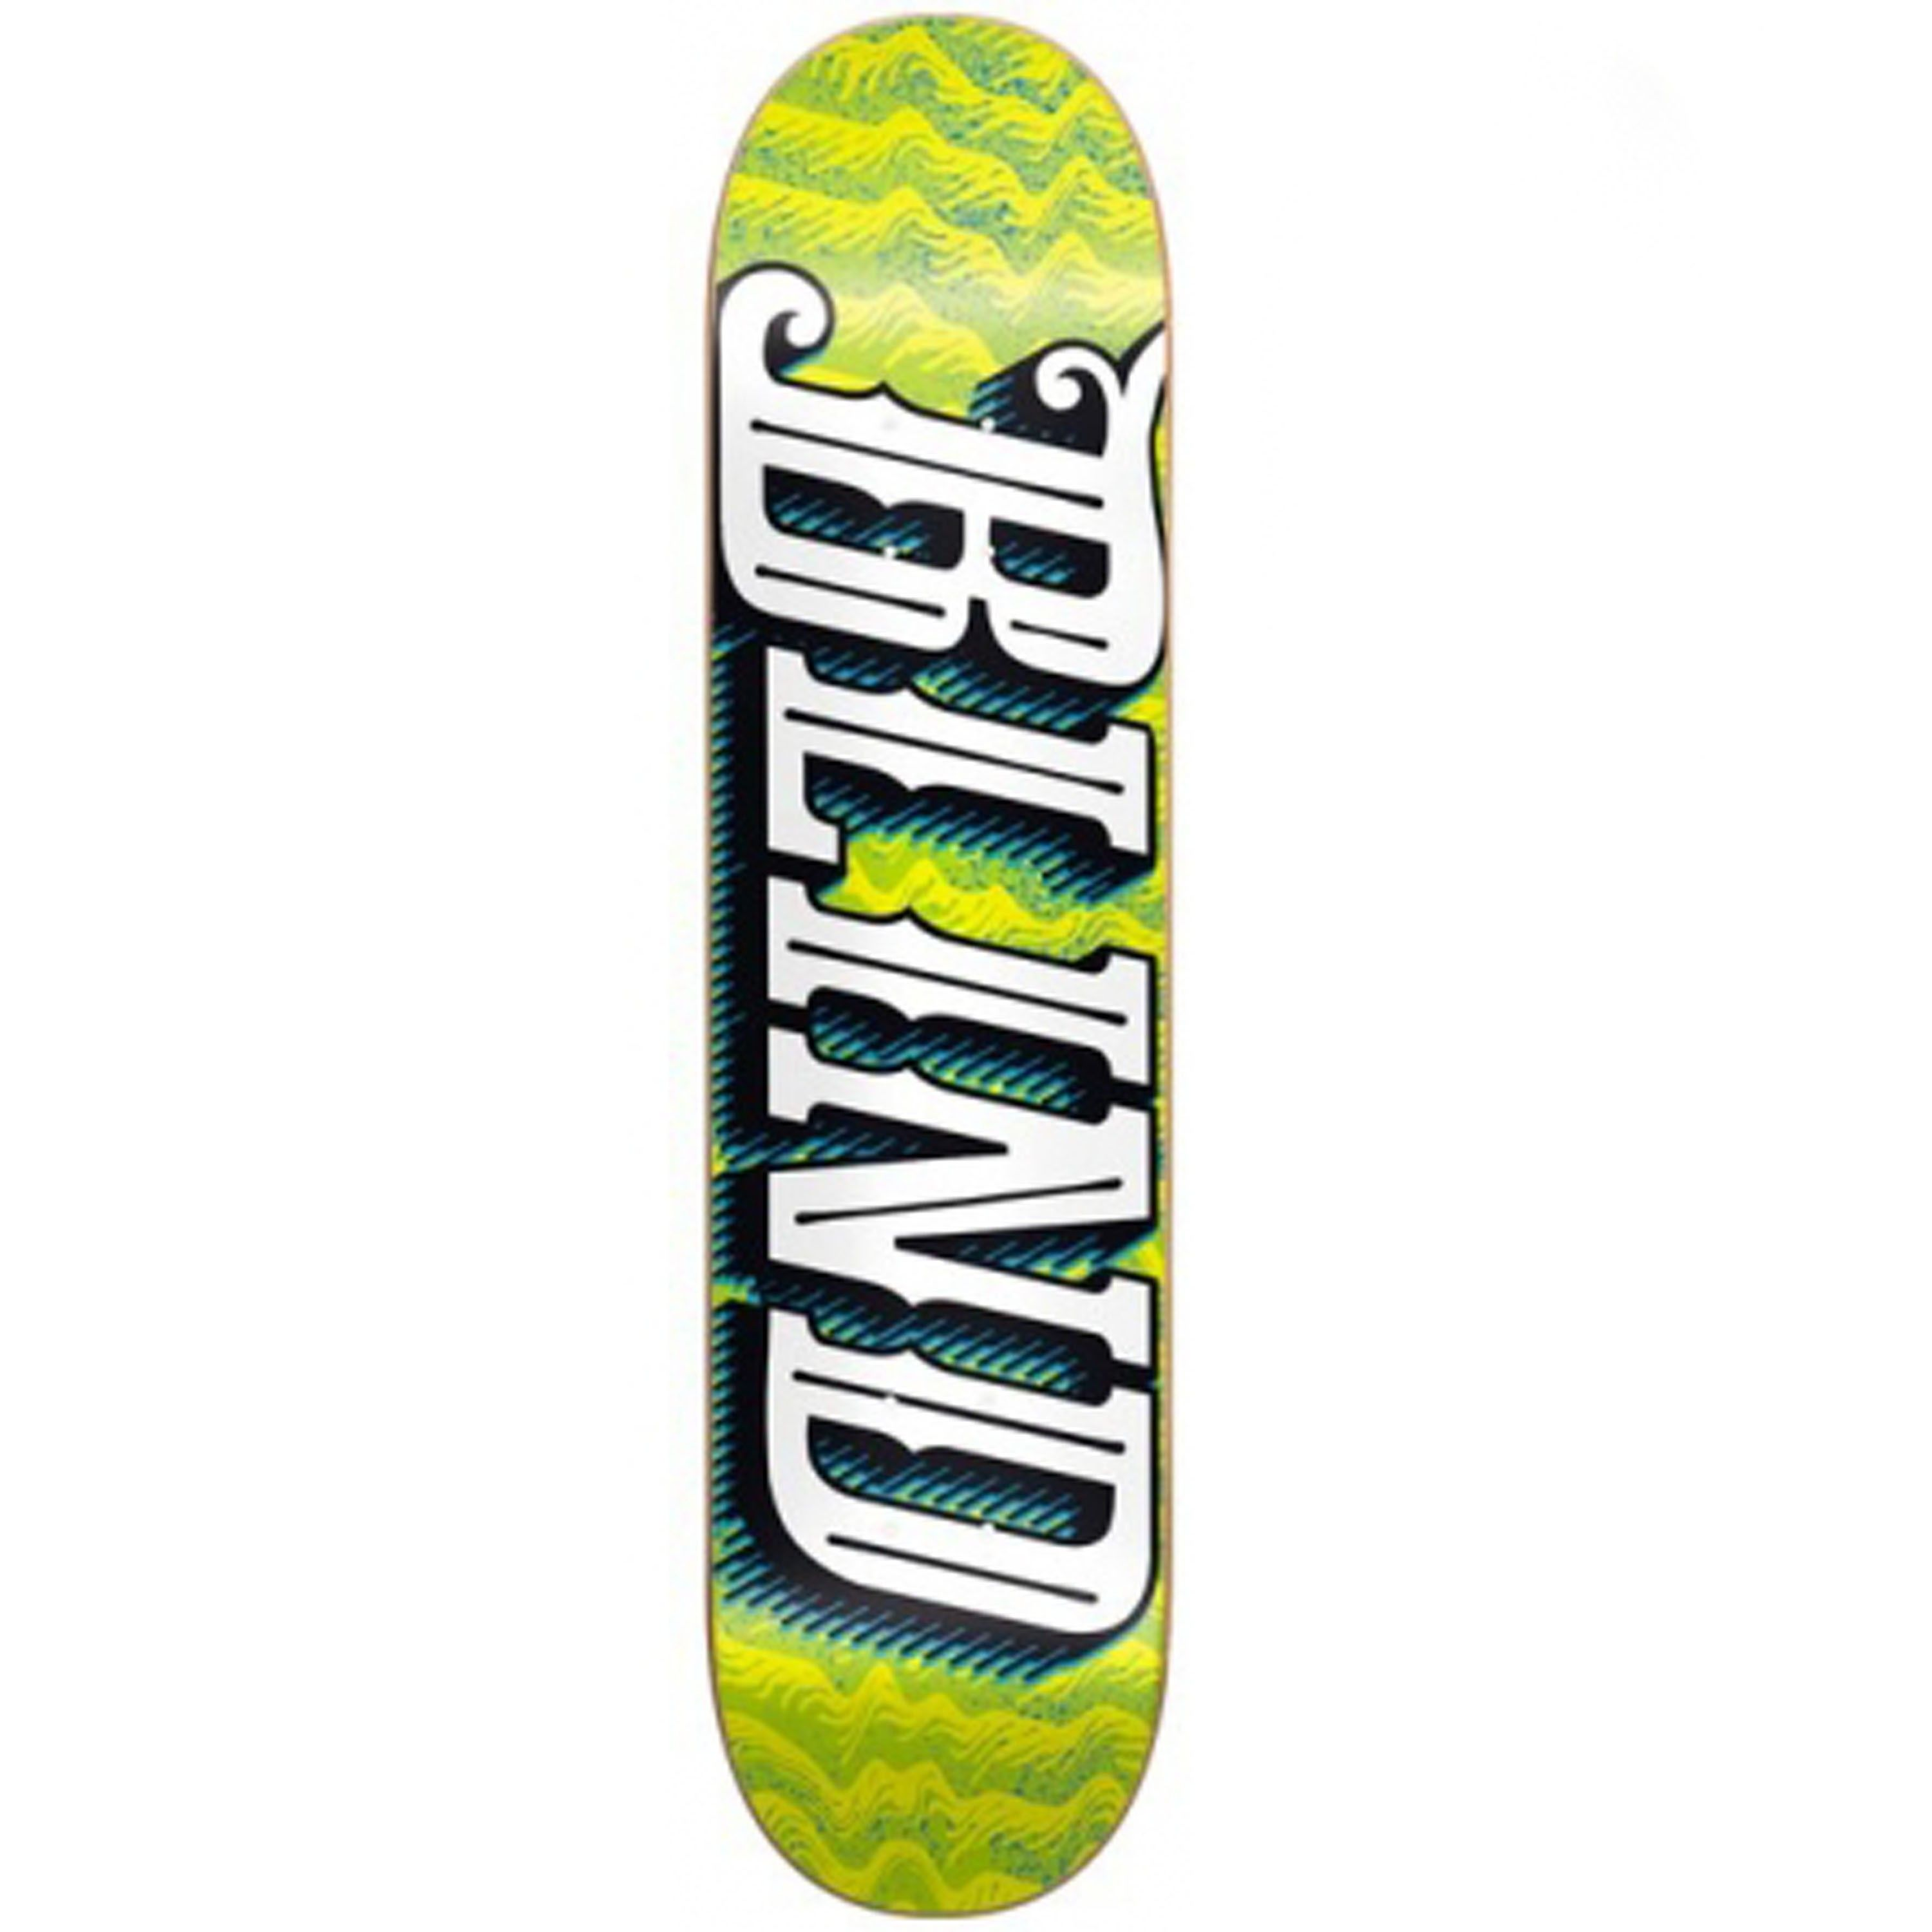 Blind Line Up Hyb Green Yellow 8 0 Deck Only Width 8 20 3cm